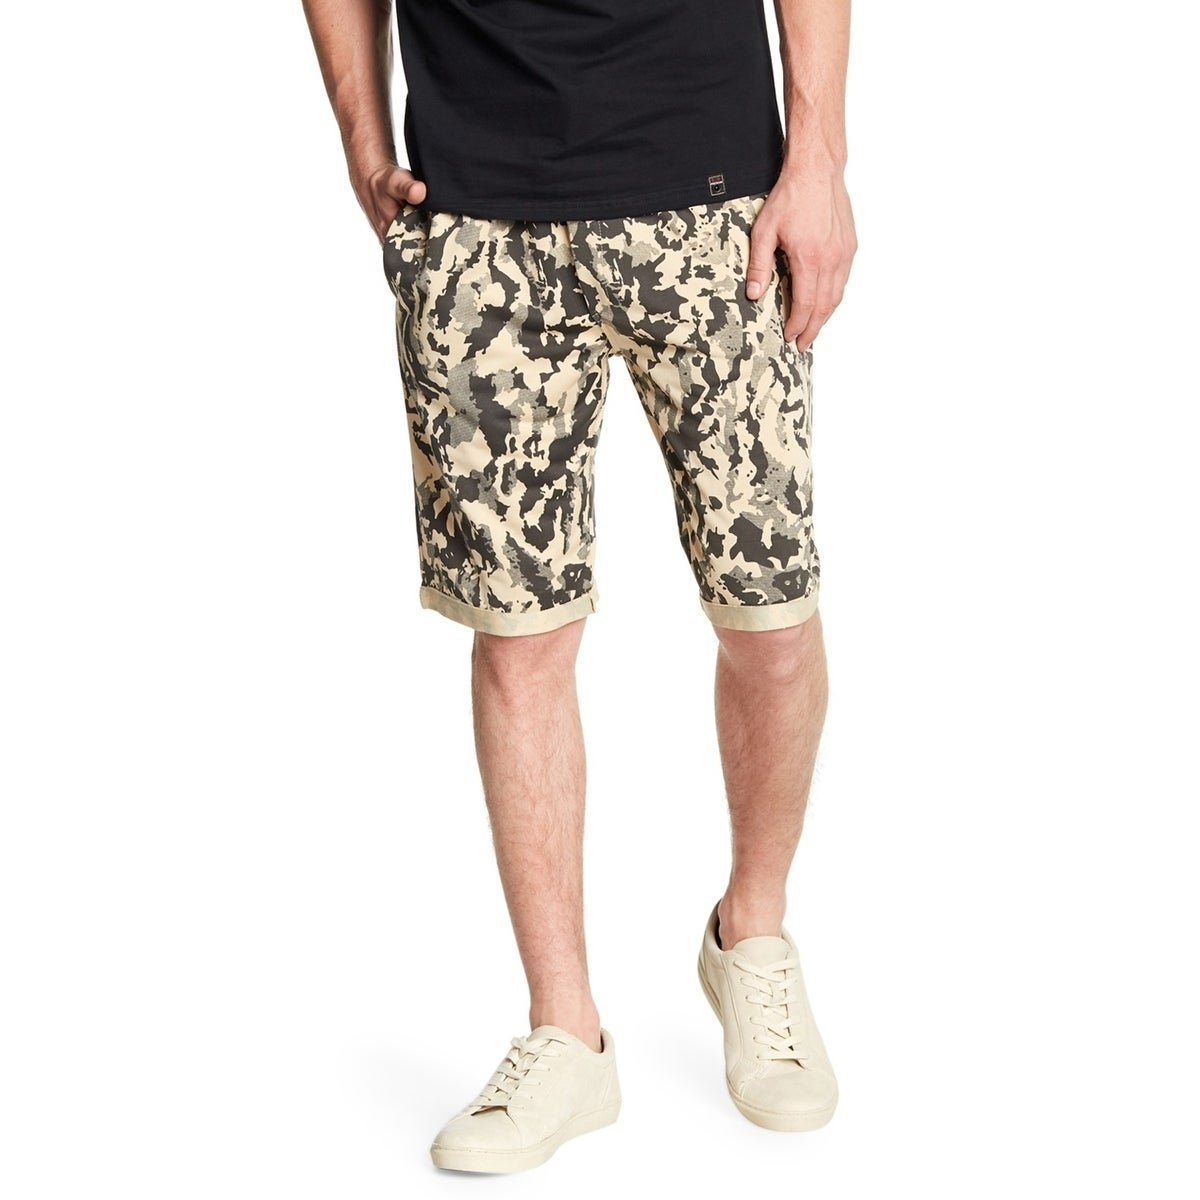 Champion Authentic Cotton 9-Inch Men/'s Shorts with PocketsFree Shipping